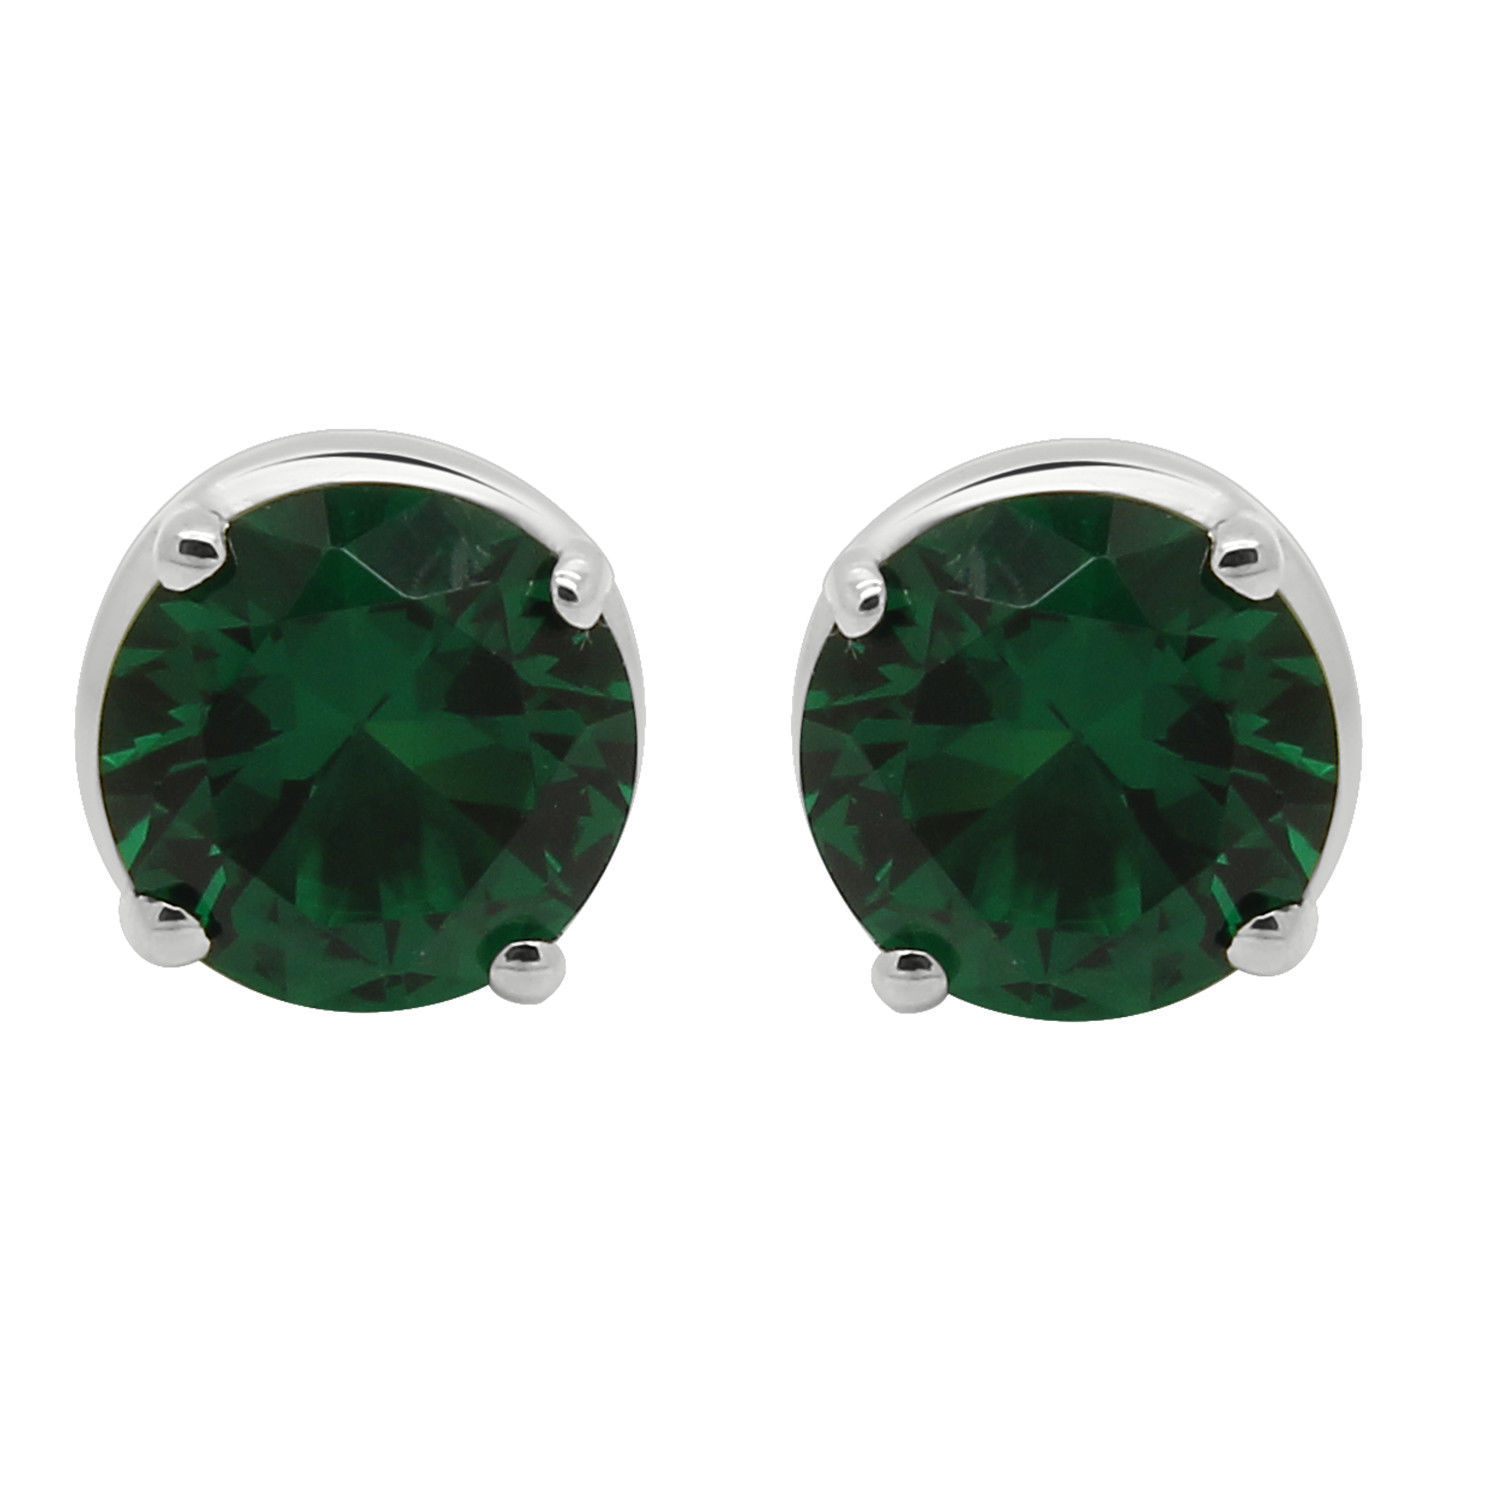 10K White Gold Round Simulated Green Emerald Solitaire Stud Earrings (2.00 Ct)